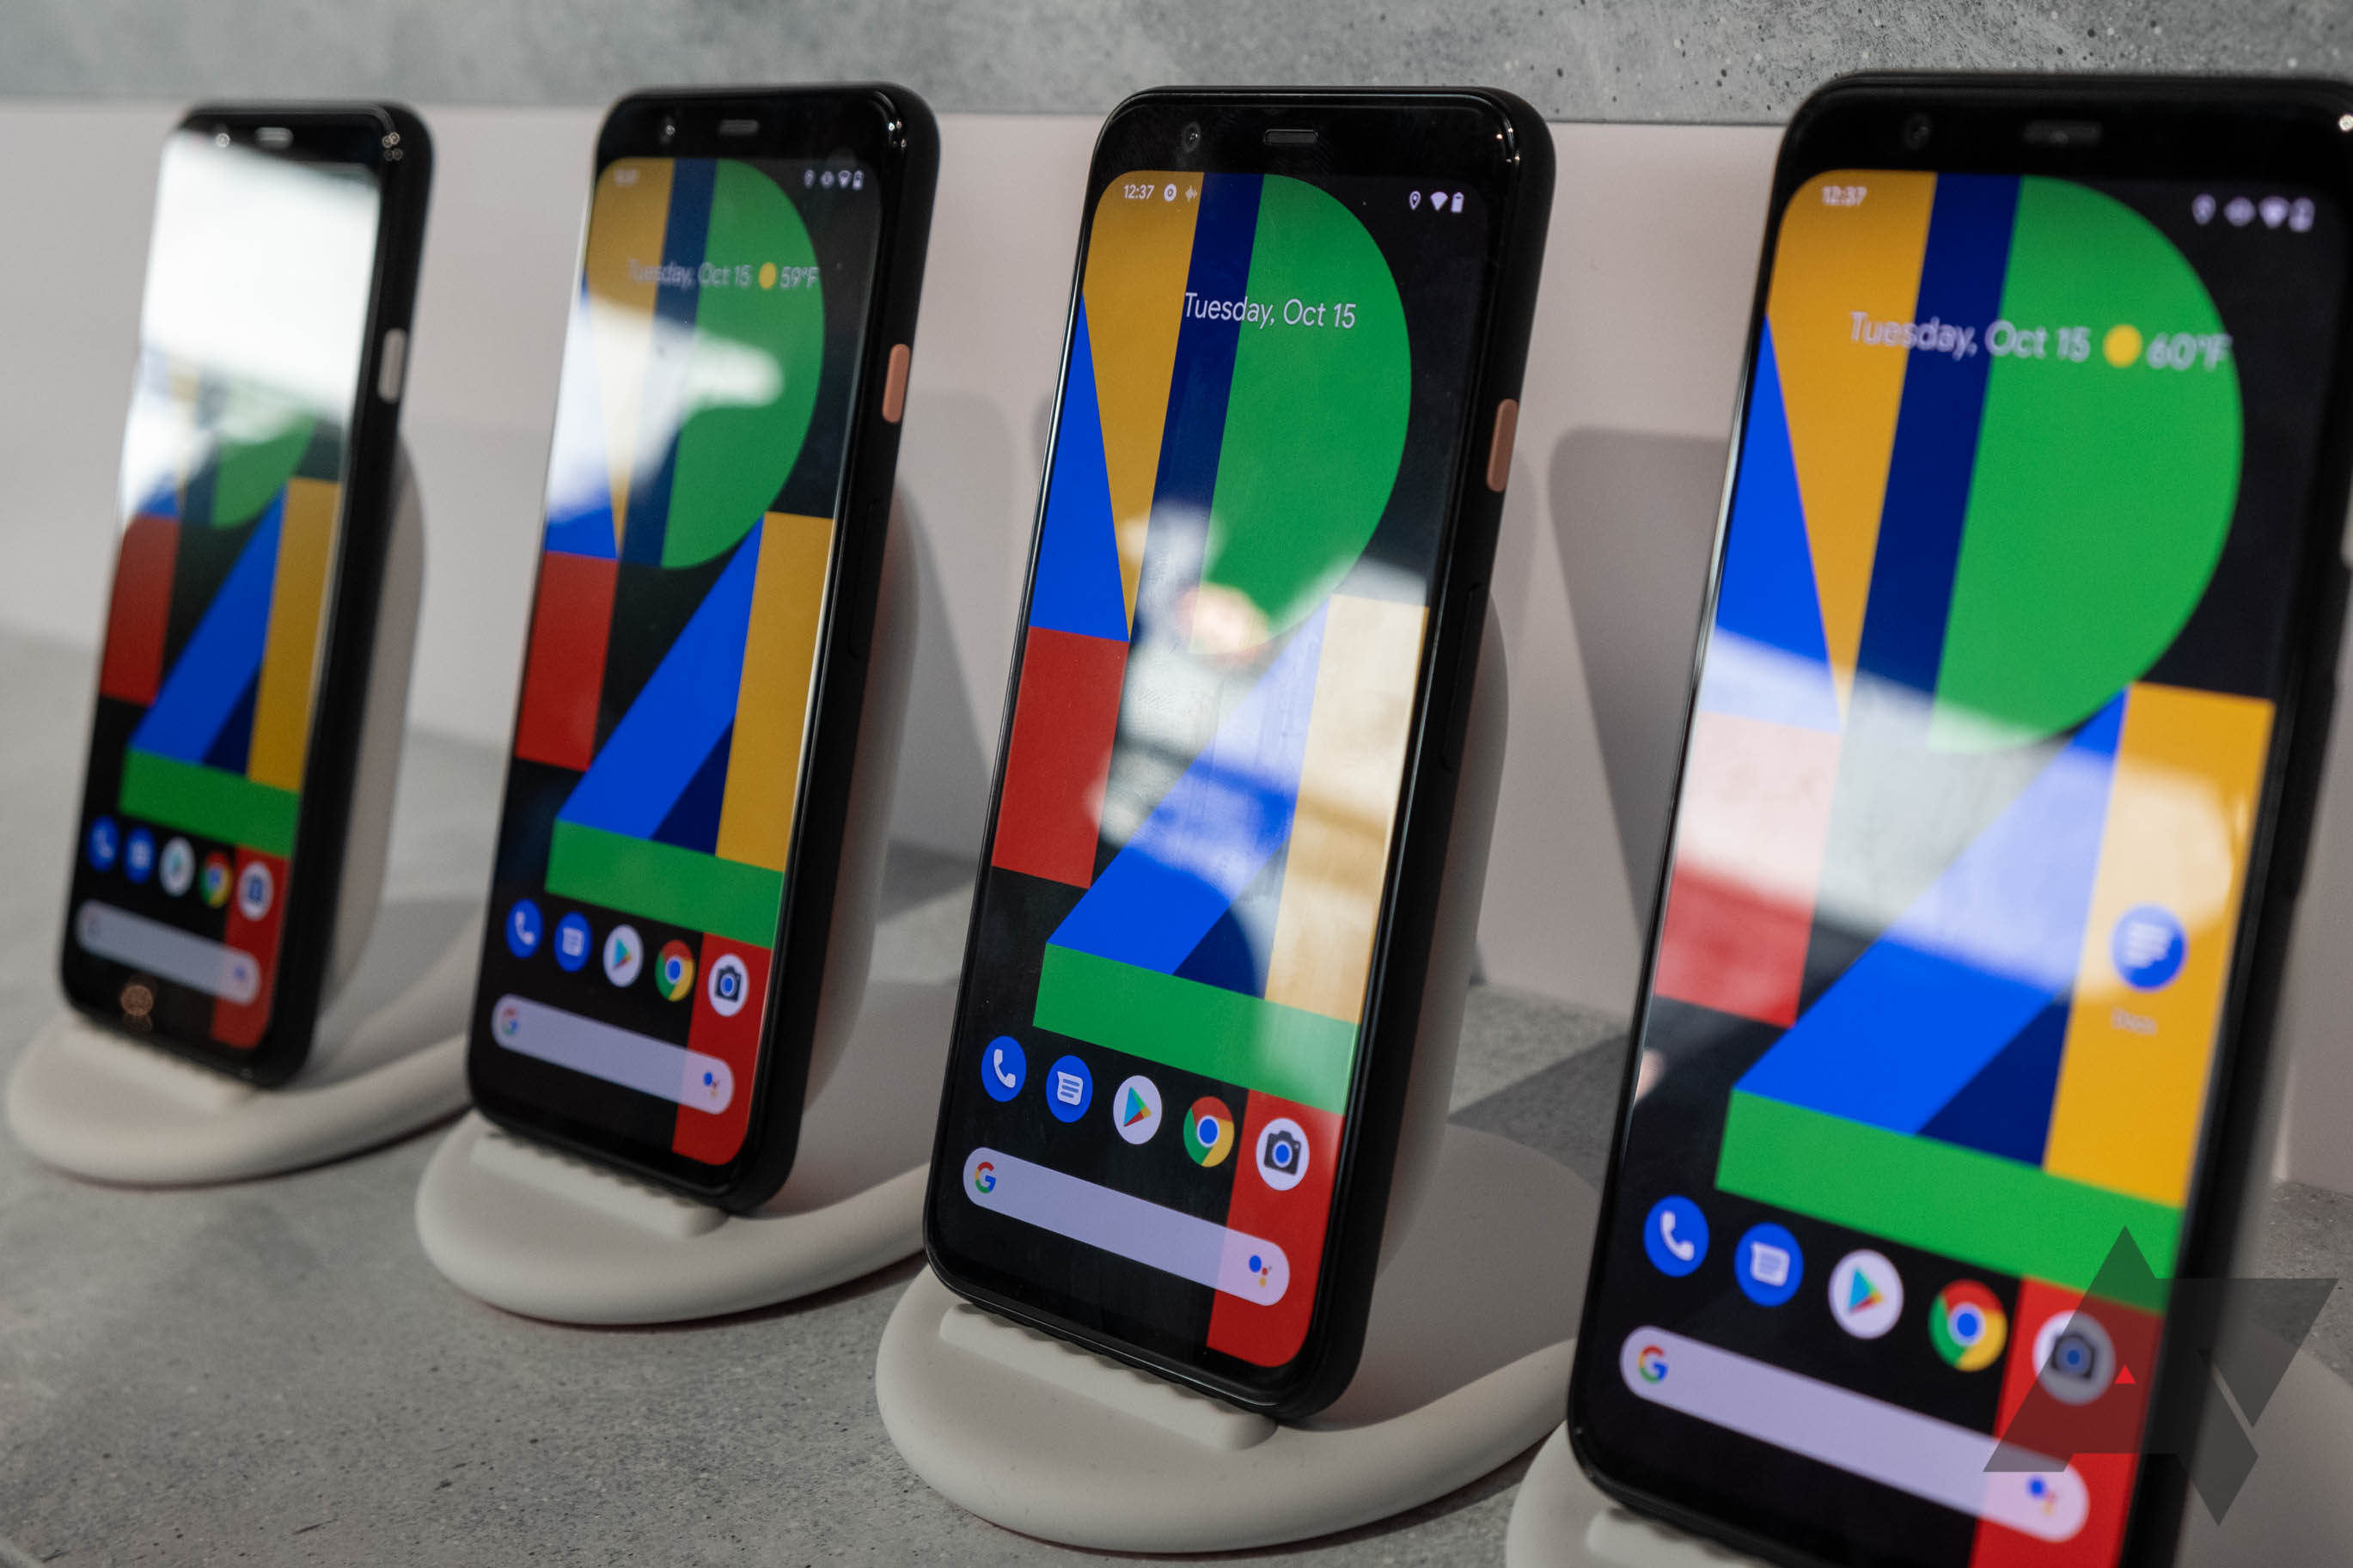 Pixel 4 supports up to 11W fast wireless charging on third-party chargers